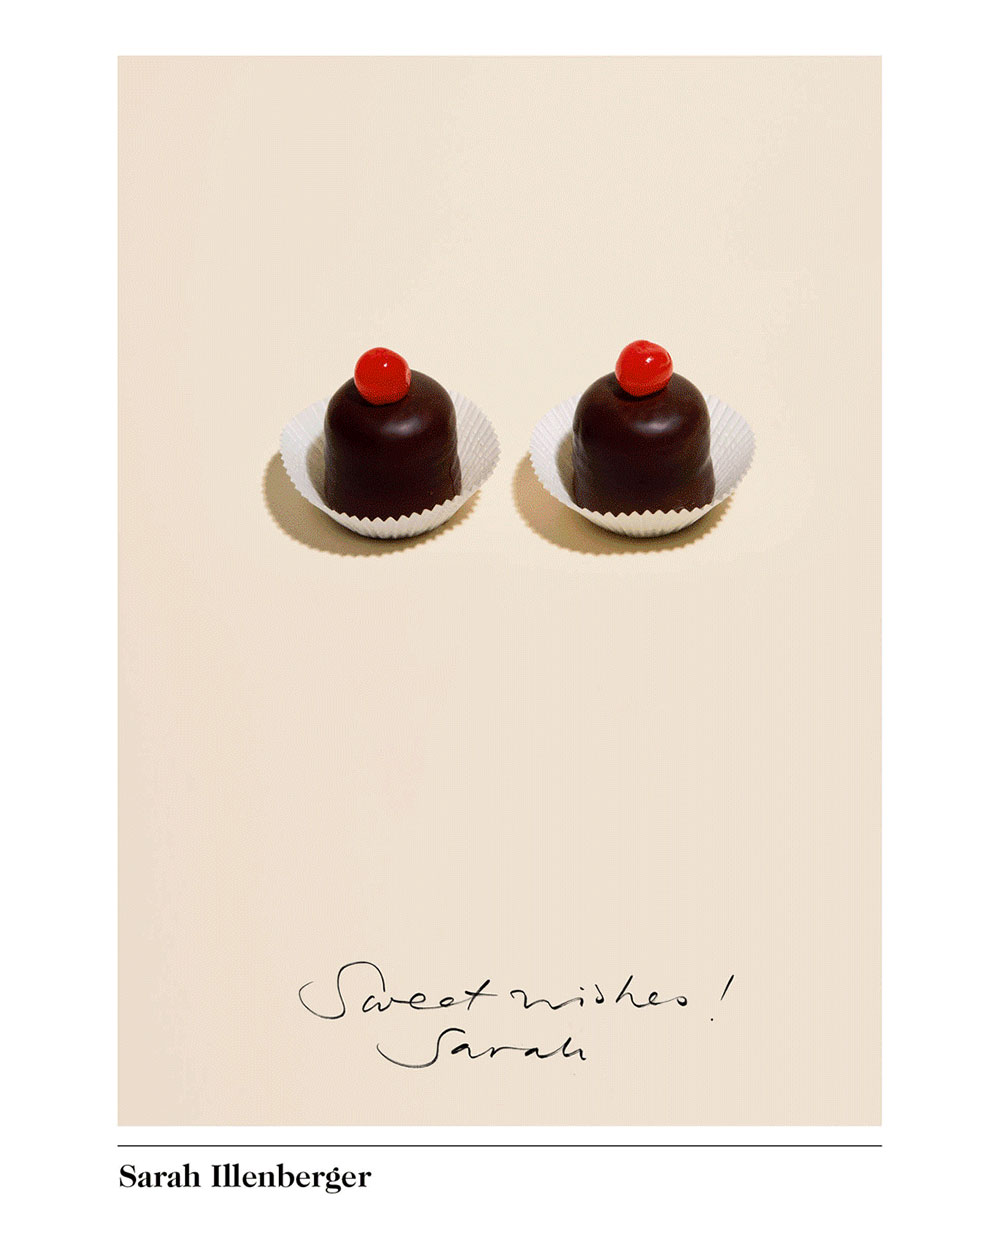 Birthday greeting from Sarah Illenberger, from http://www.phaidon.com/CelebrateTomi